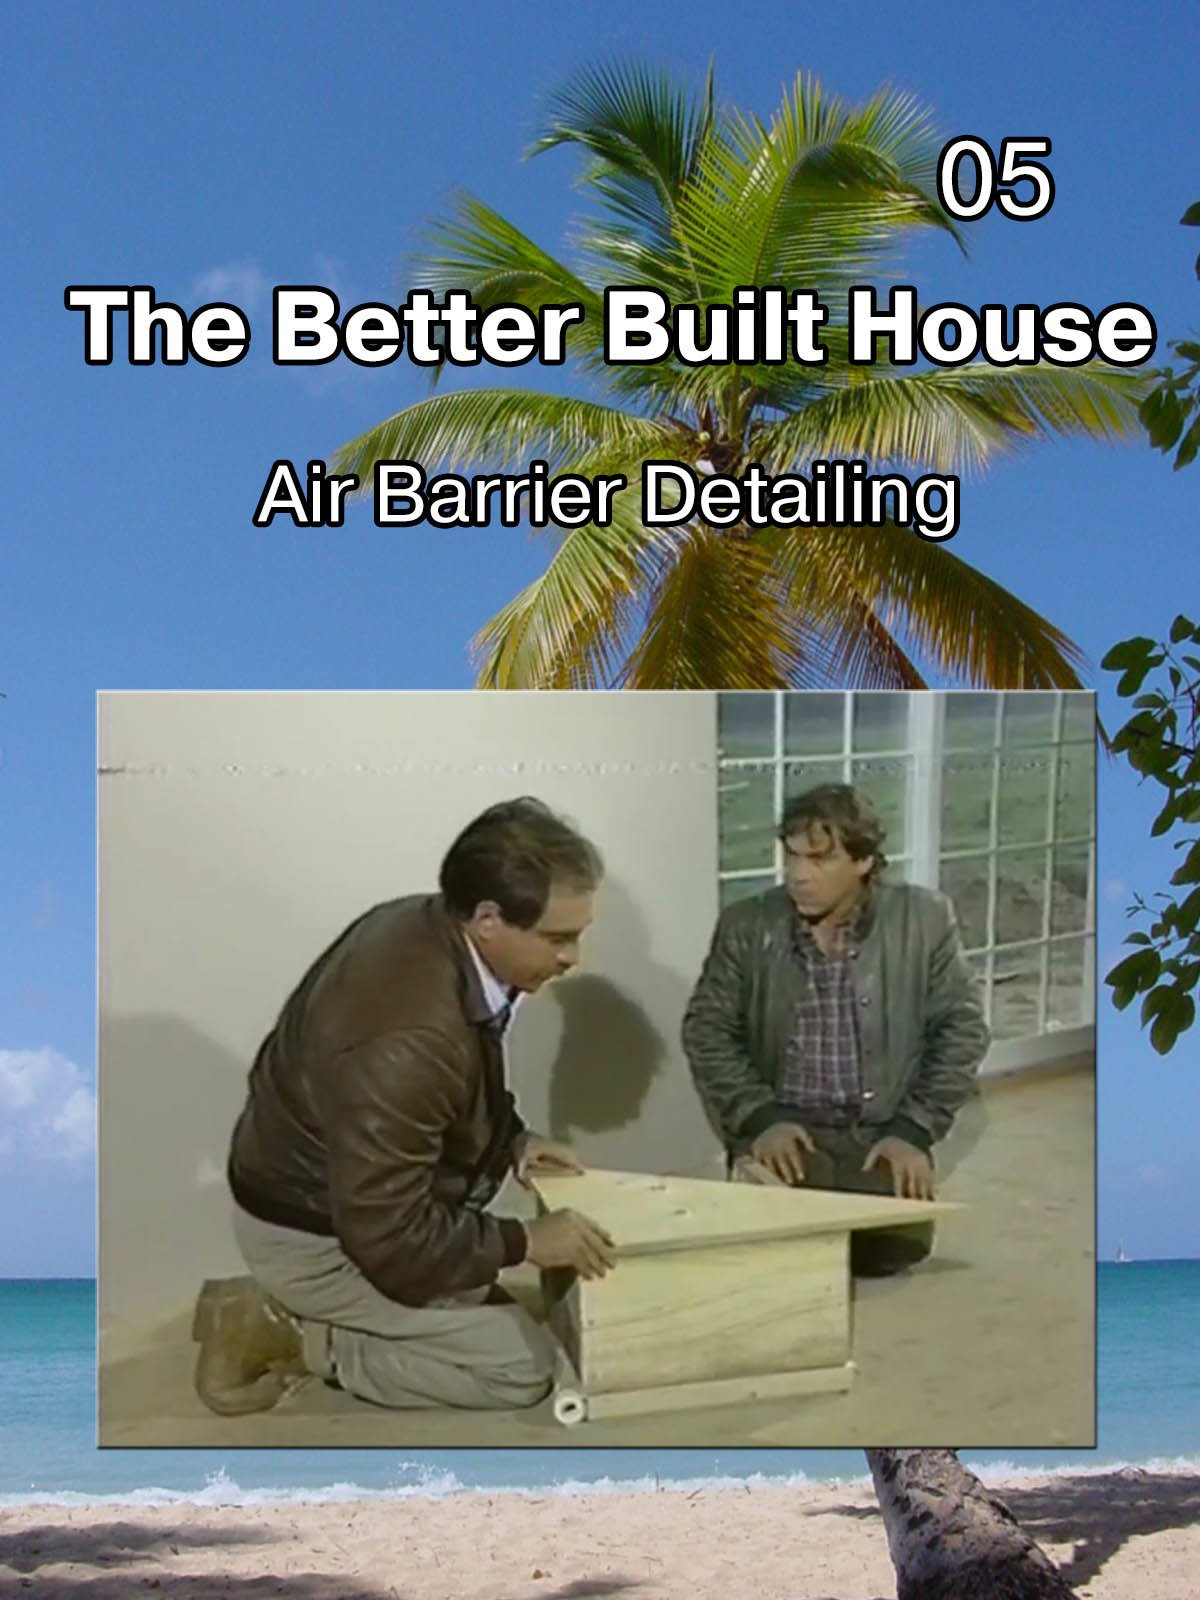 The Better Built House 05 Air Barrier Detailing on Amazon Prime Instant Video UK